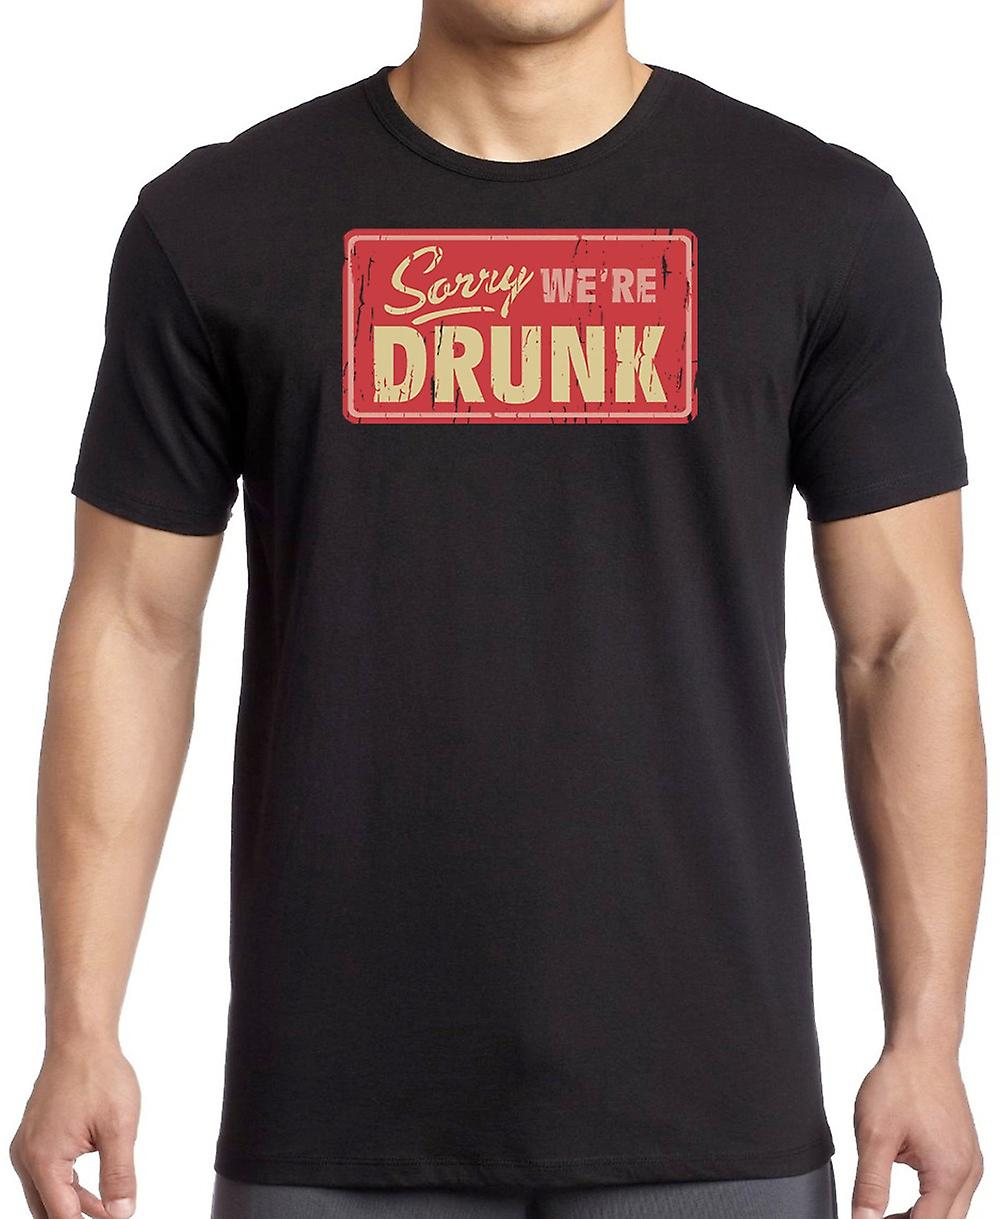 Sorry Were Drunk - Funny Crude Kids T Shirt